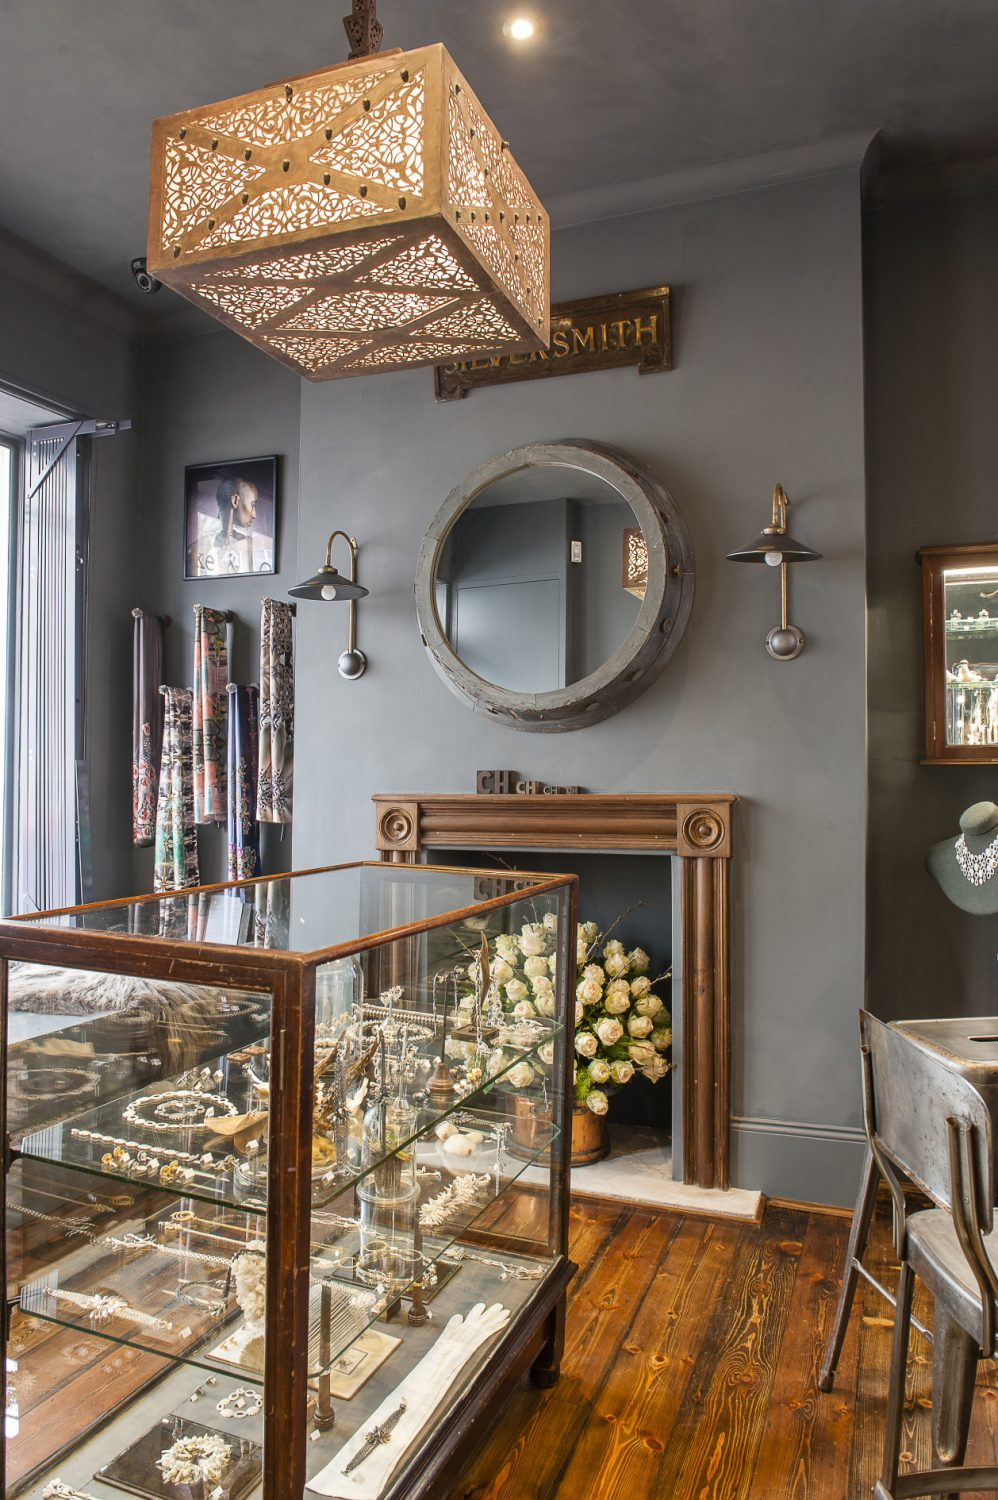 The display cases and counters are bespoke and were painstakingly sourced from all over the country